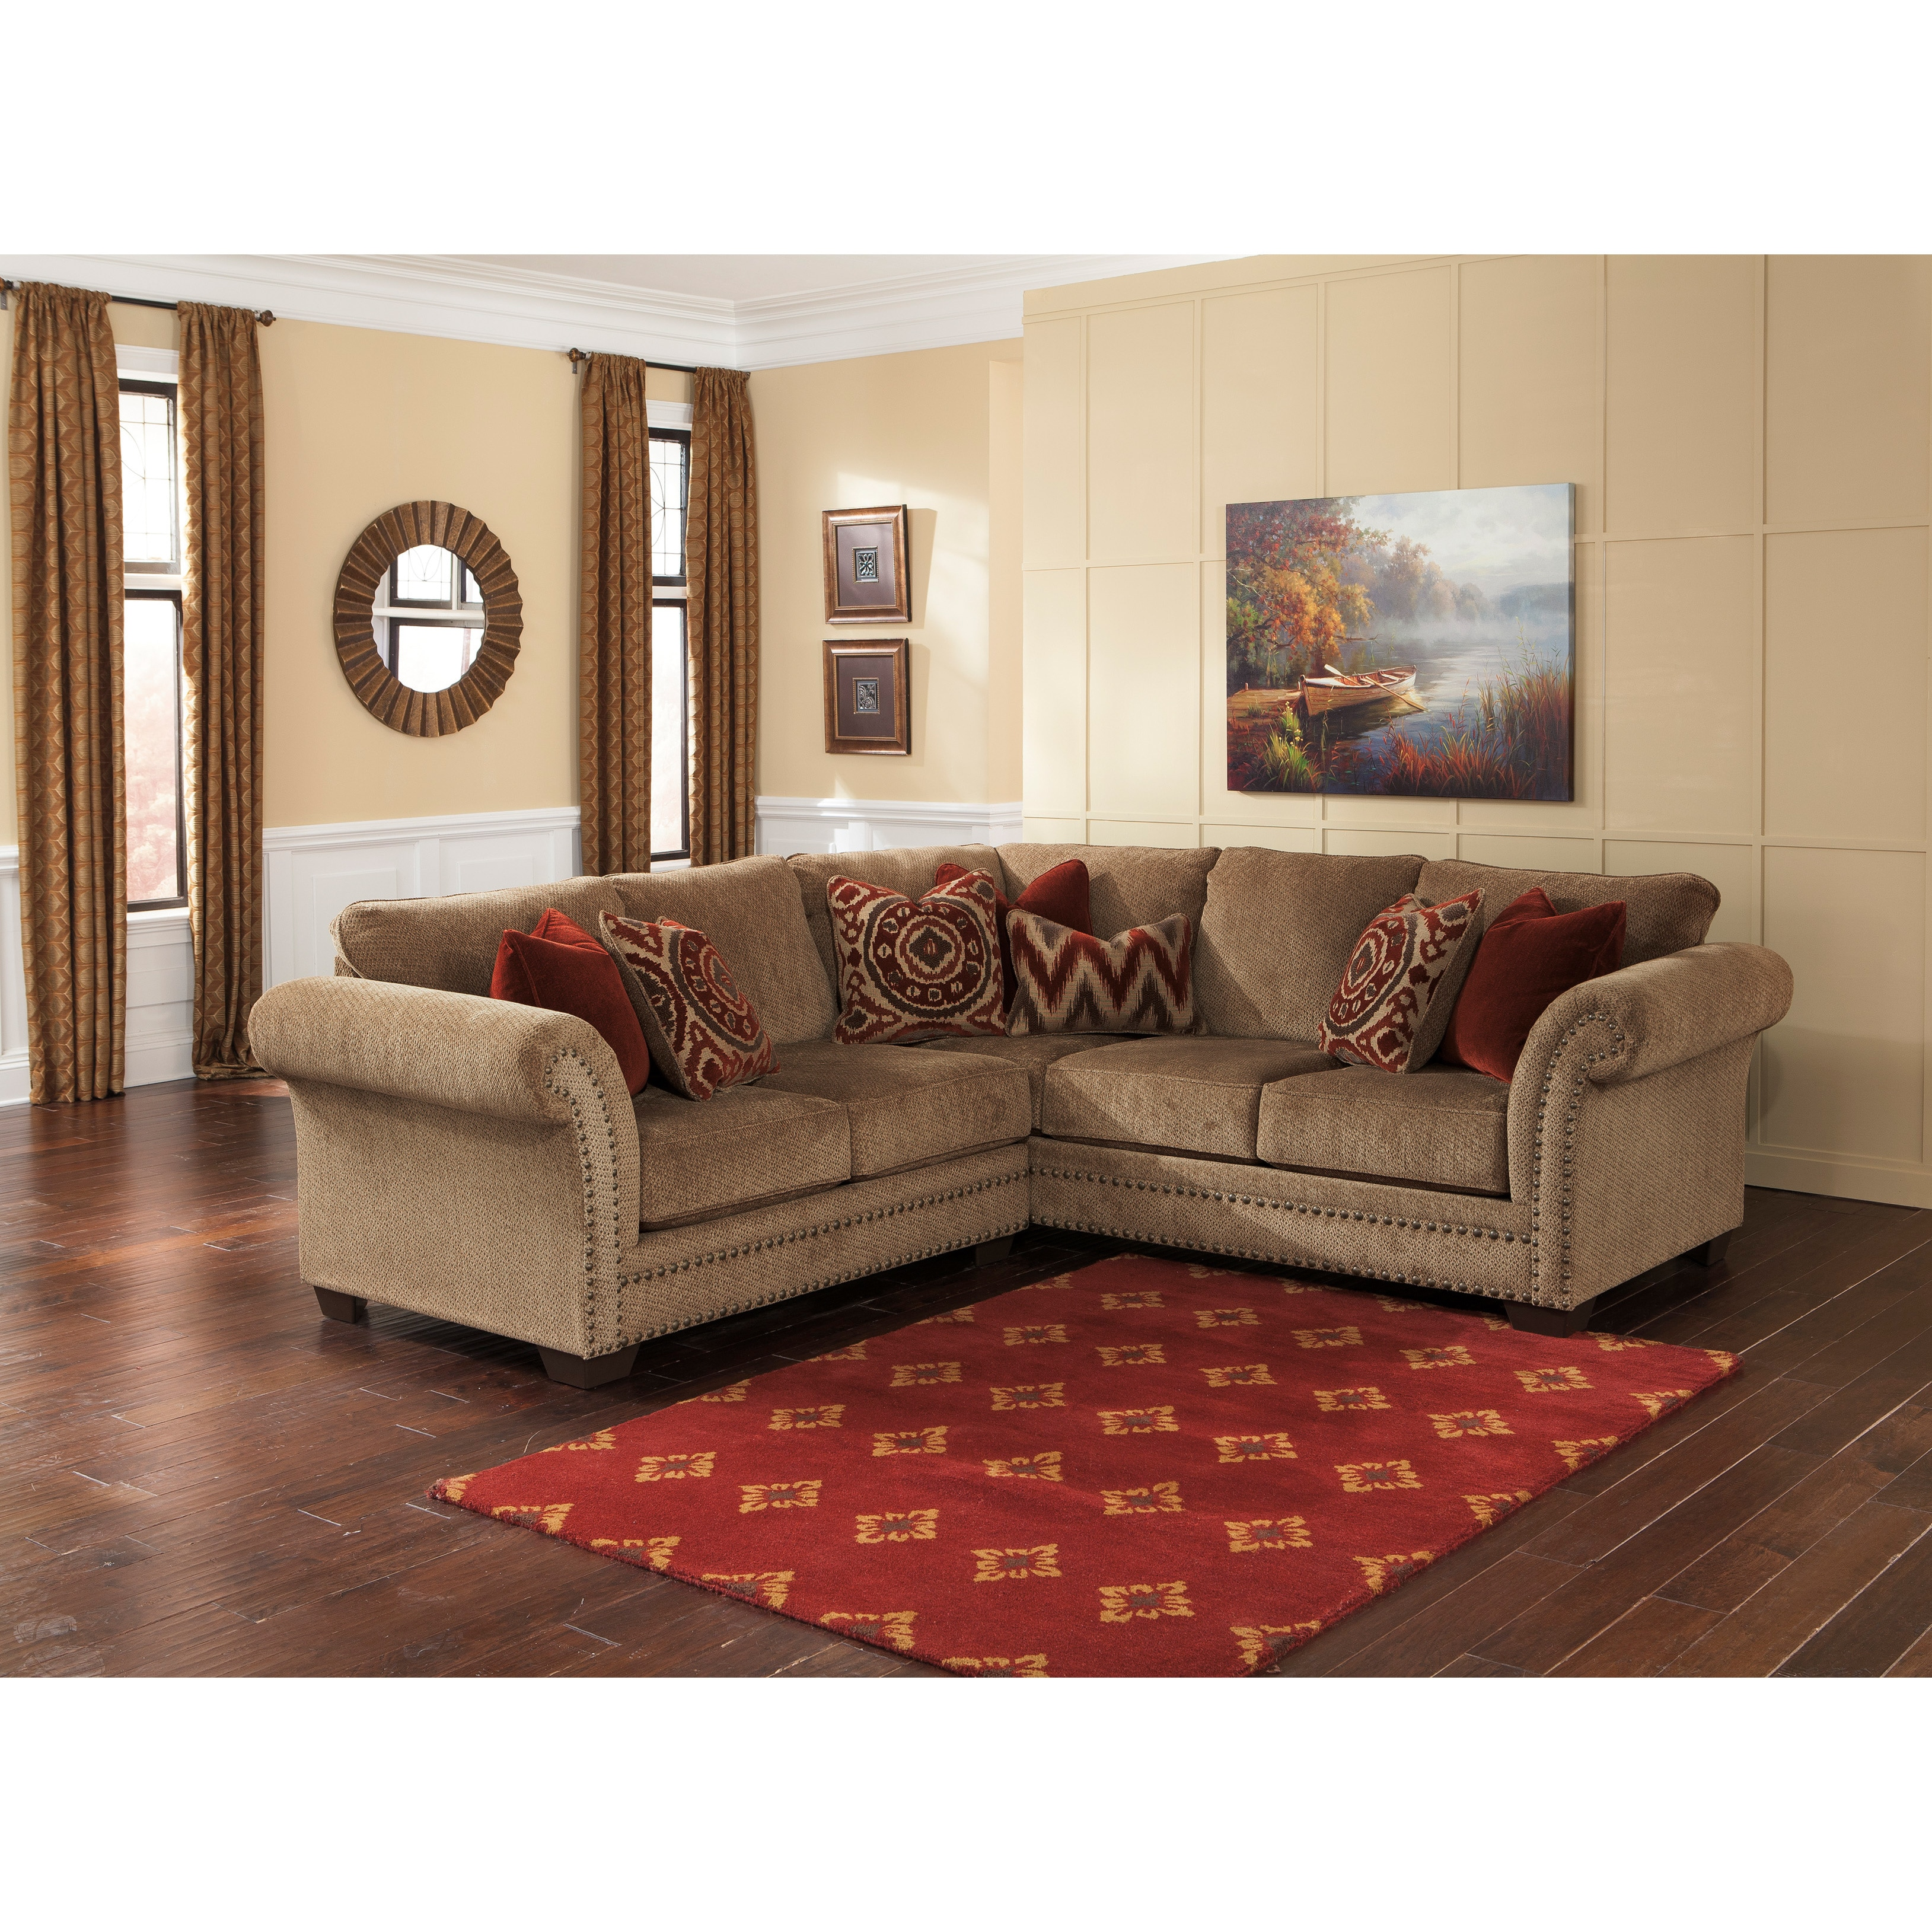 Shop Signature Design by Ashley Grecian Amber Loveseat and Sofa ...